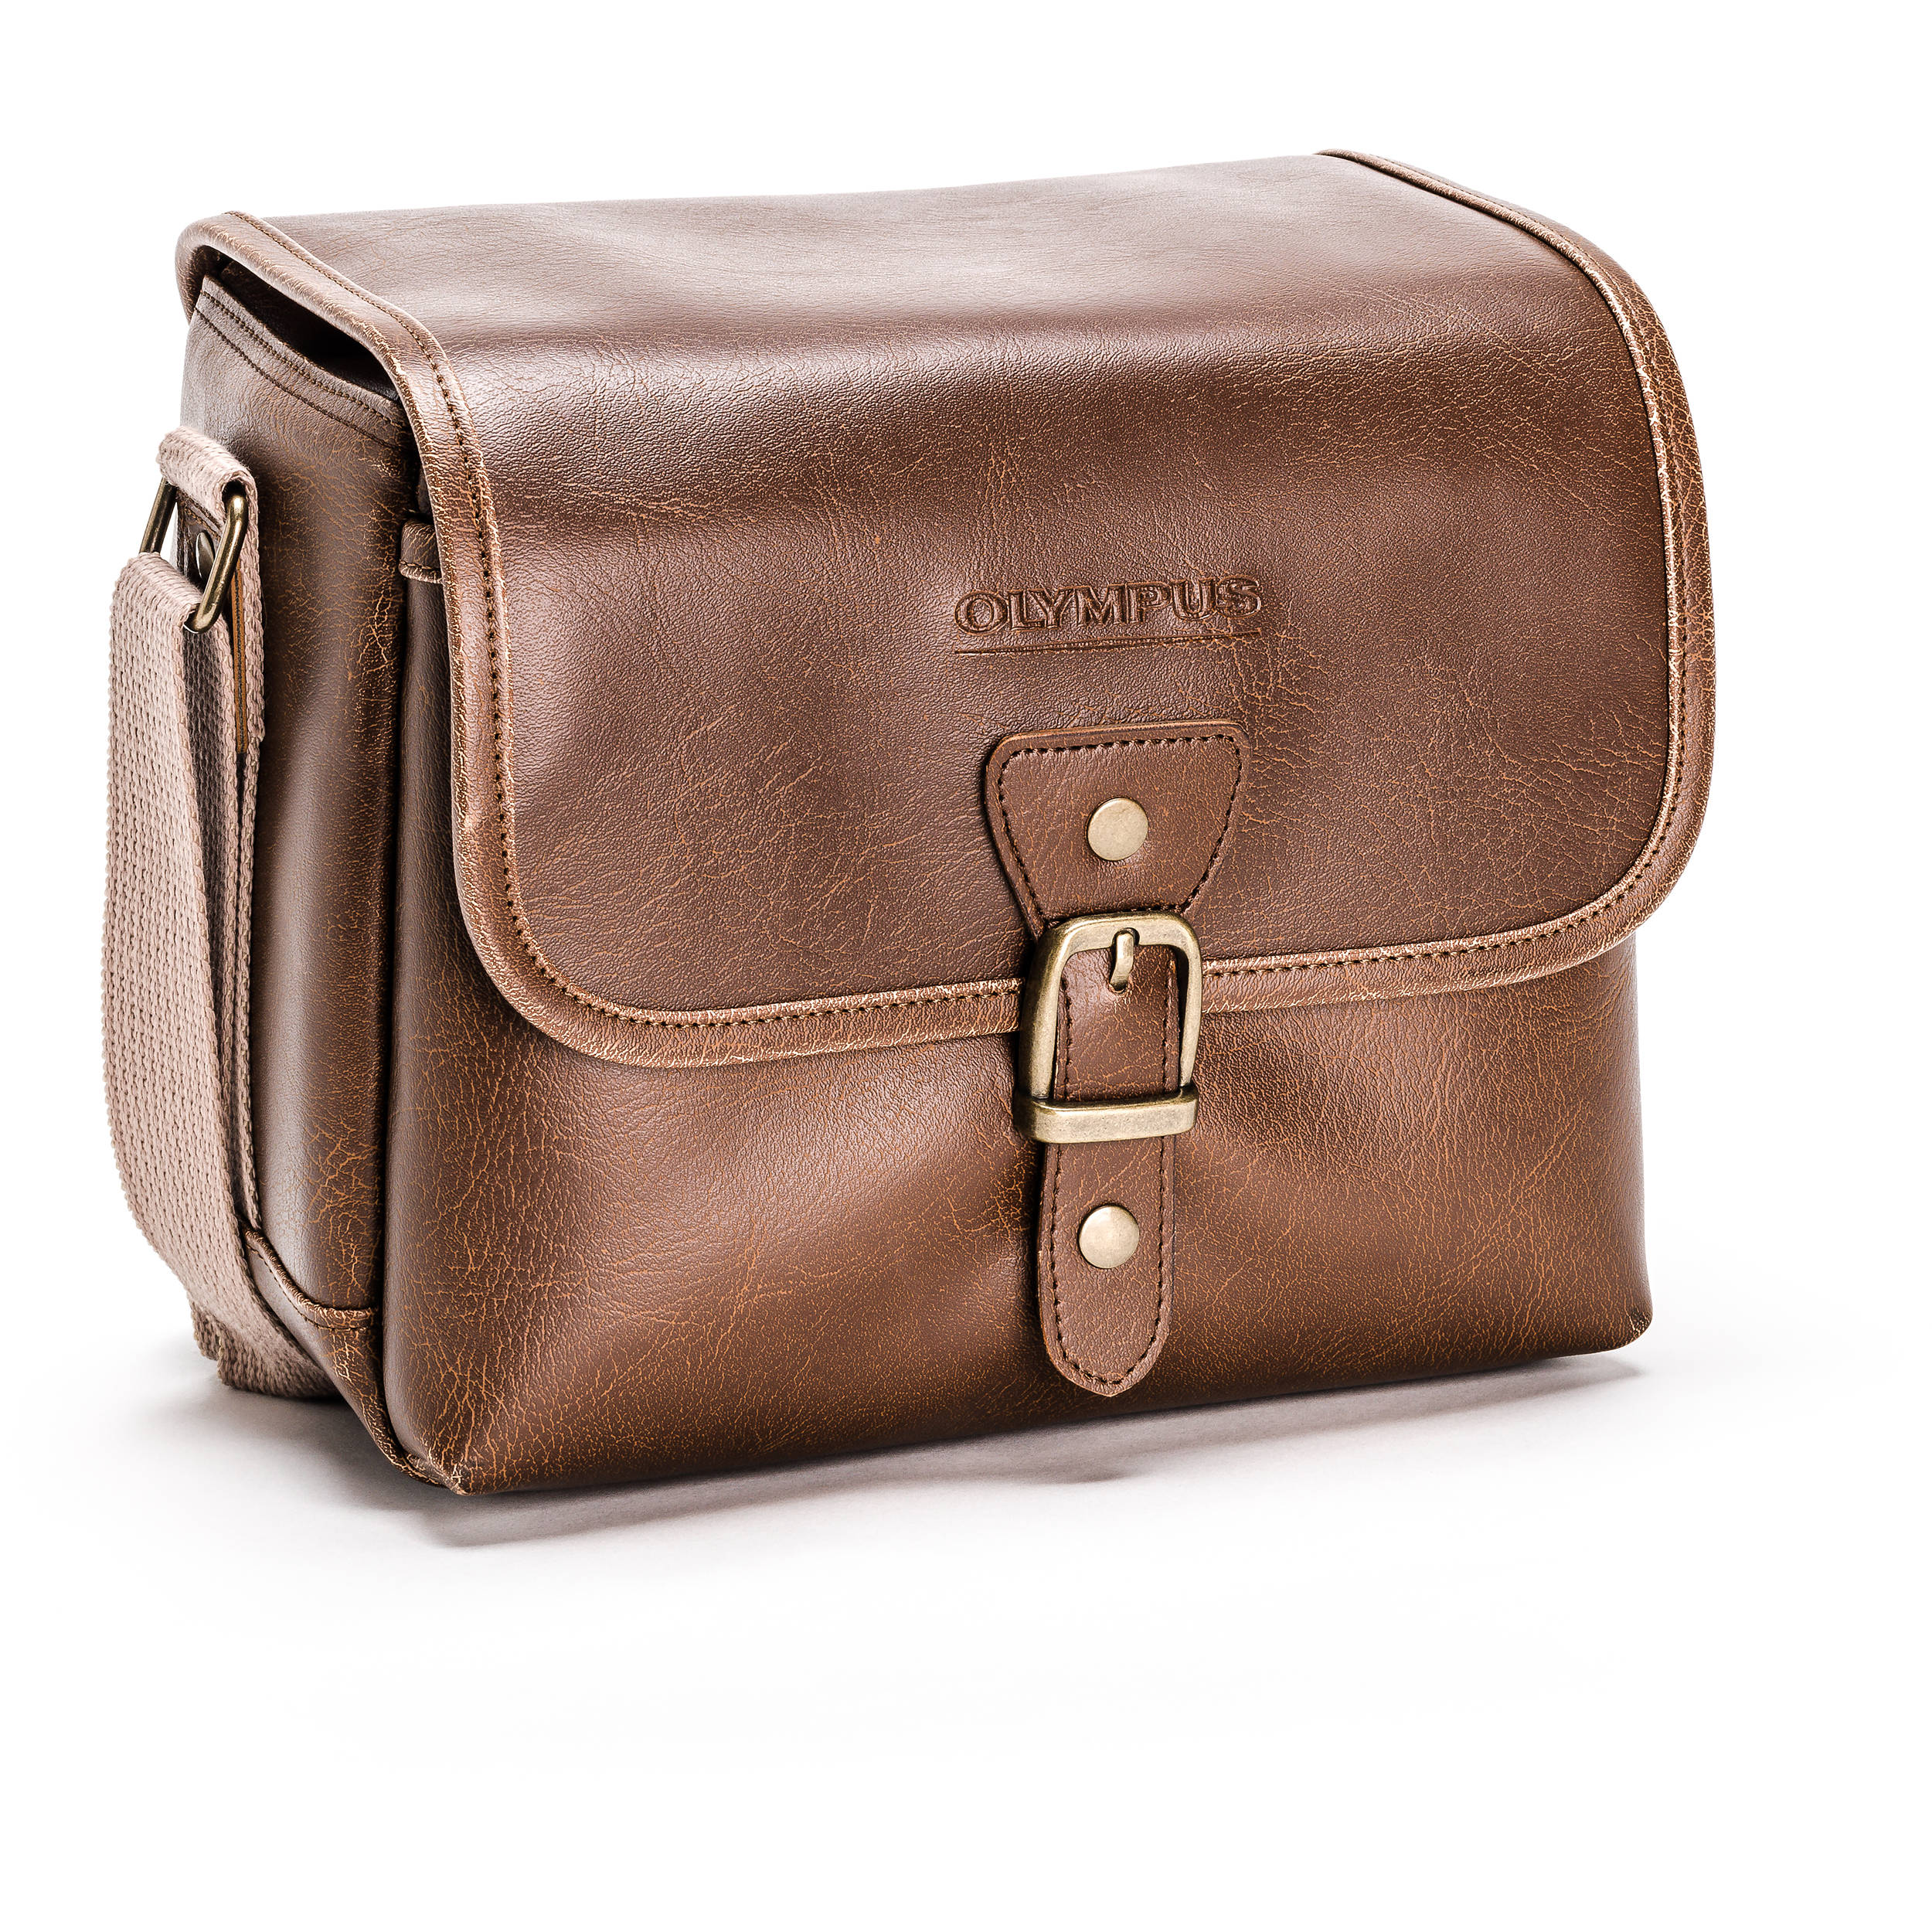 Olympus Tracker Classic Design Vintage Camera Bag